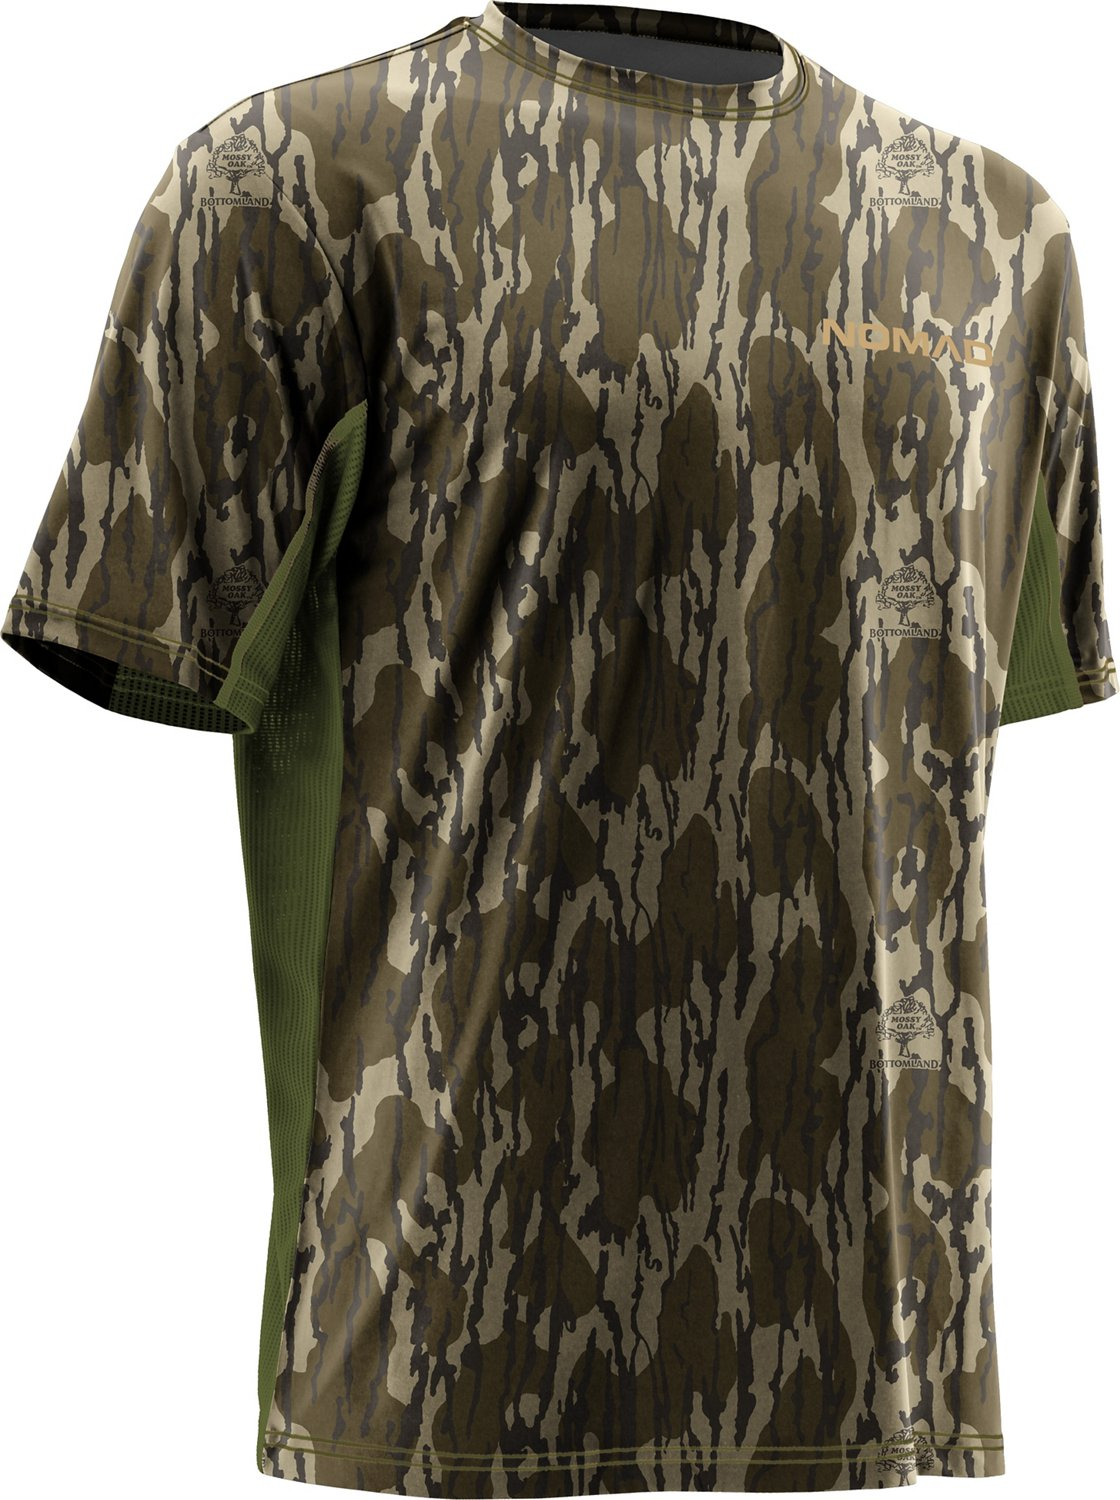 7df4fcd92 Display product reviews for Nomad Men's Cooling Camo T-shirt